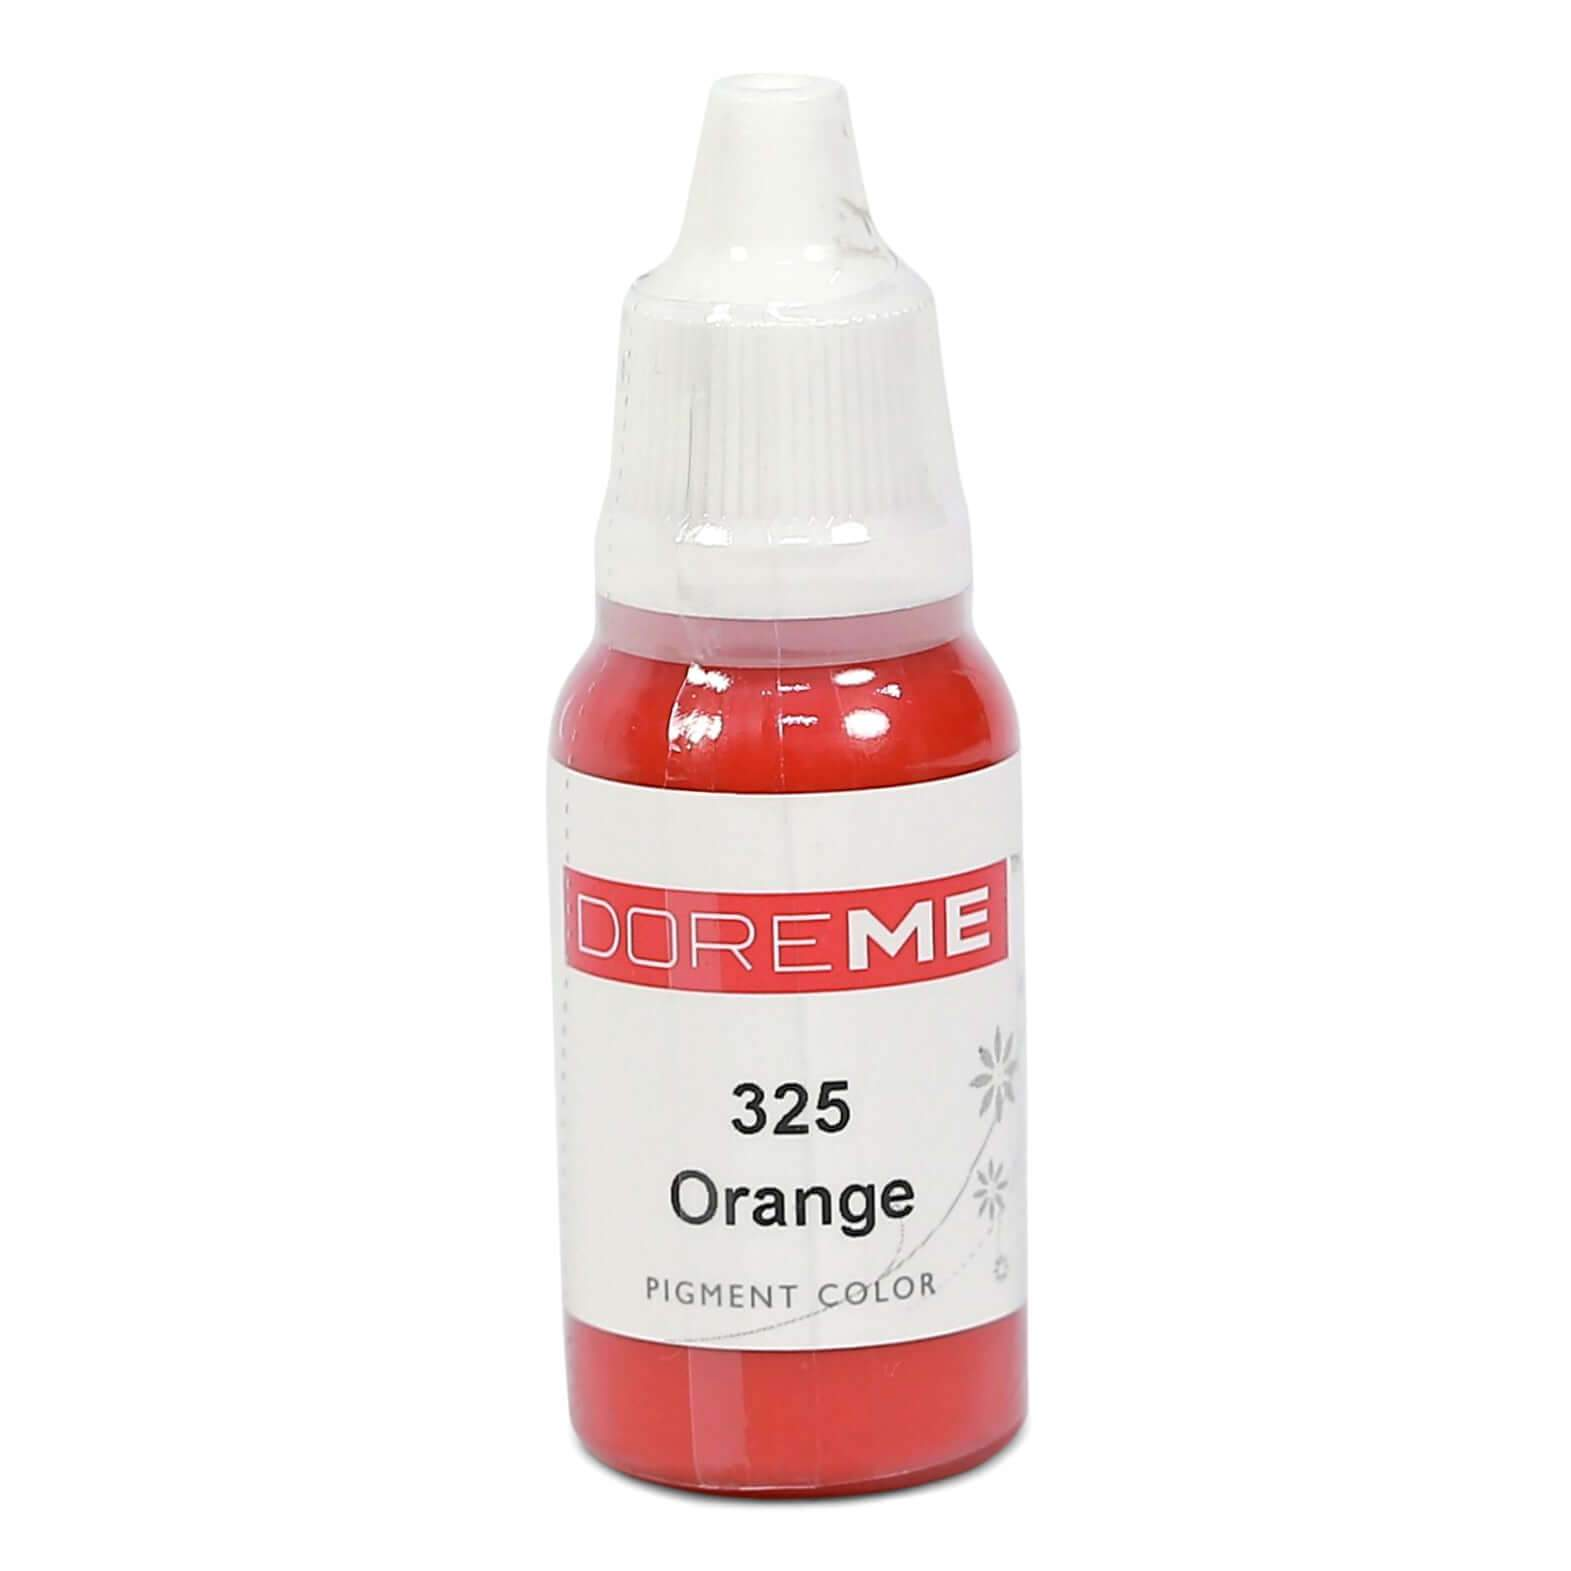 Permanent Makeup pigments Doreme Micropigmentation Eyebrow, Eyeliner, Lip Colours 325 Orange (w) - Beautiful Ink UK trade and wholesale supplier